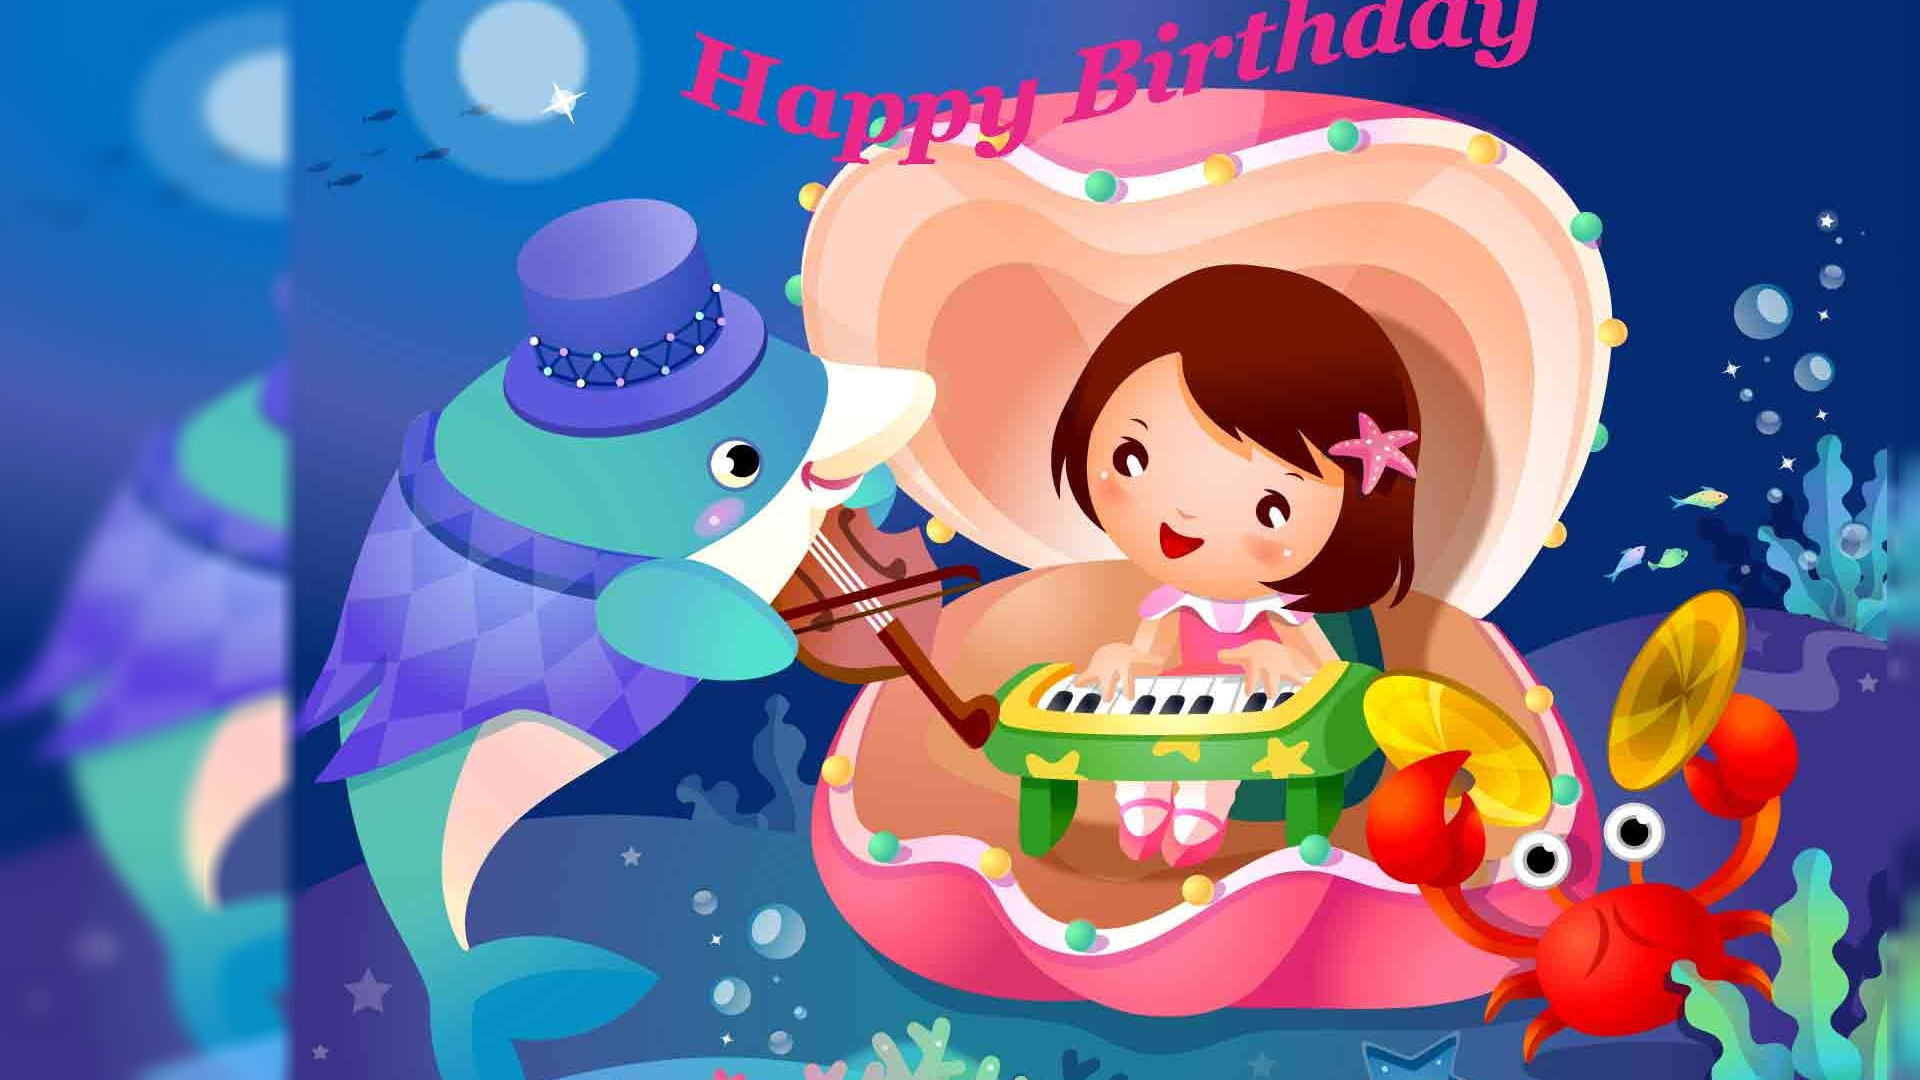 Funny happy birthday greeting wallpapers Toptenpackcom 1920x1080